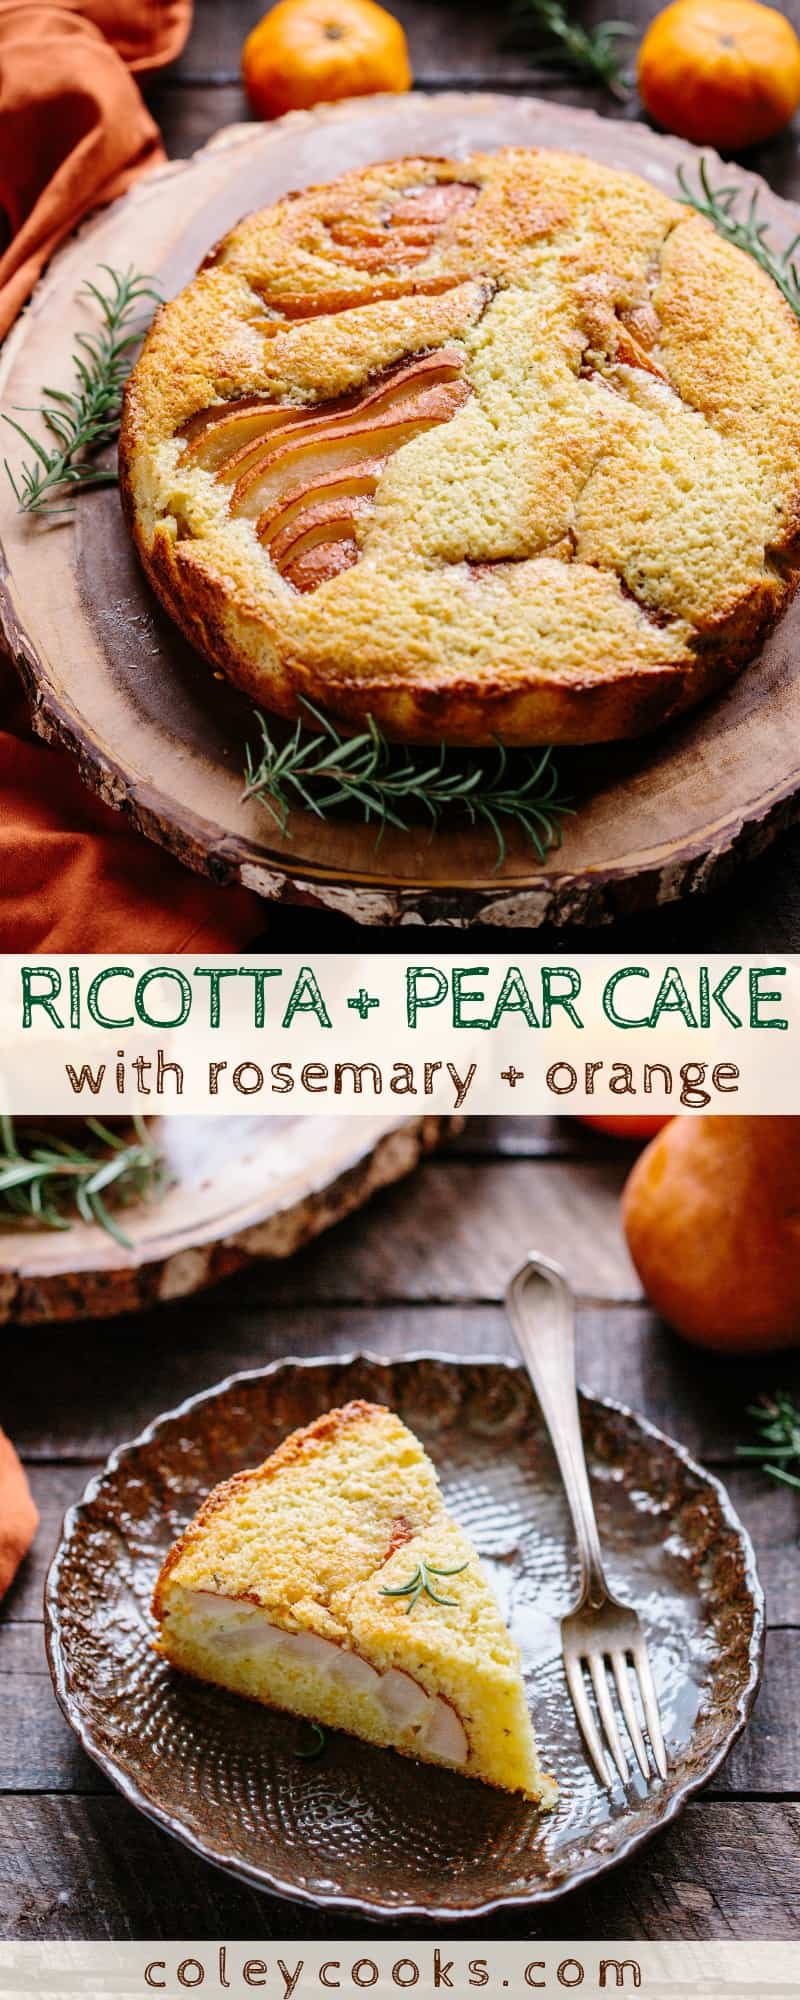 Ricotta + Pear Cake | This beautiful fall cake is made with fresh ricotta and pears, scented with orange and rosemary and makes a perfect Thanksgiving dessert! #thanksgiving #recipe #pear #ricotta #cake #dessert #rosemary #orange #easy | ColeyCooks.com